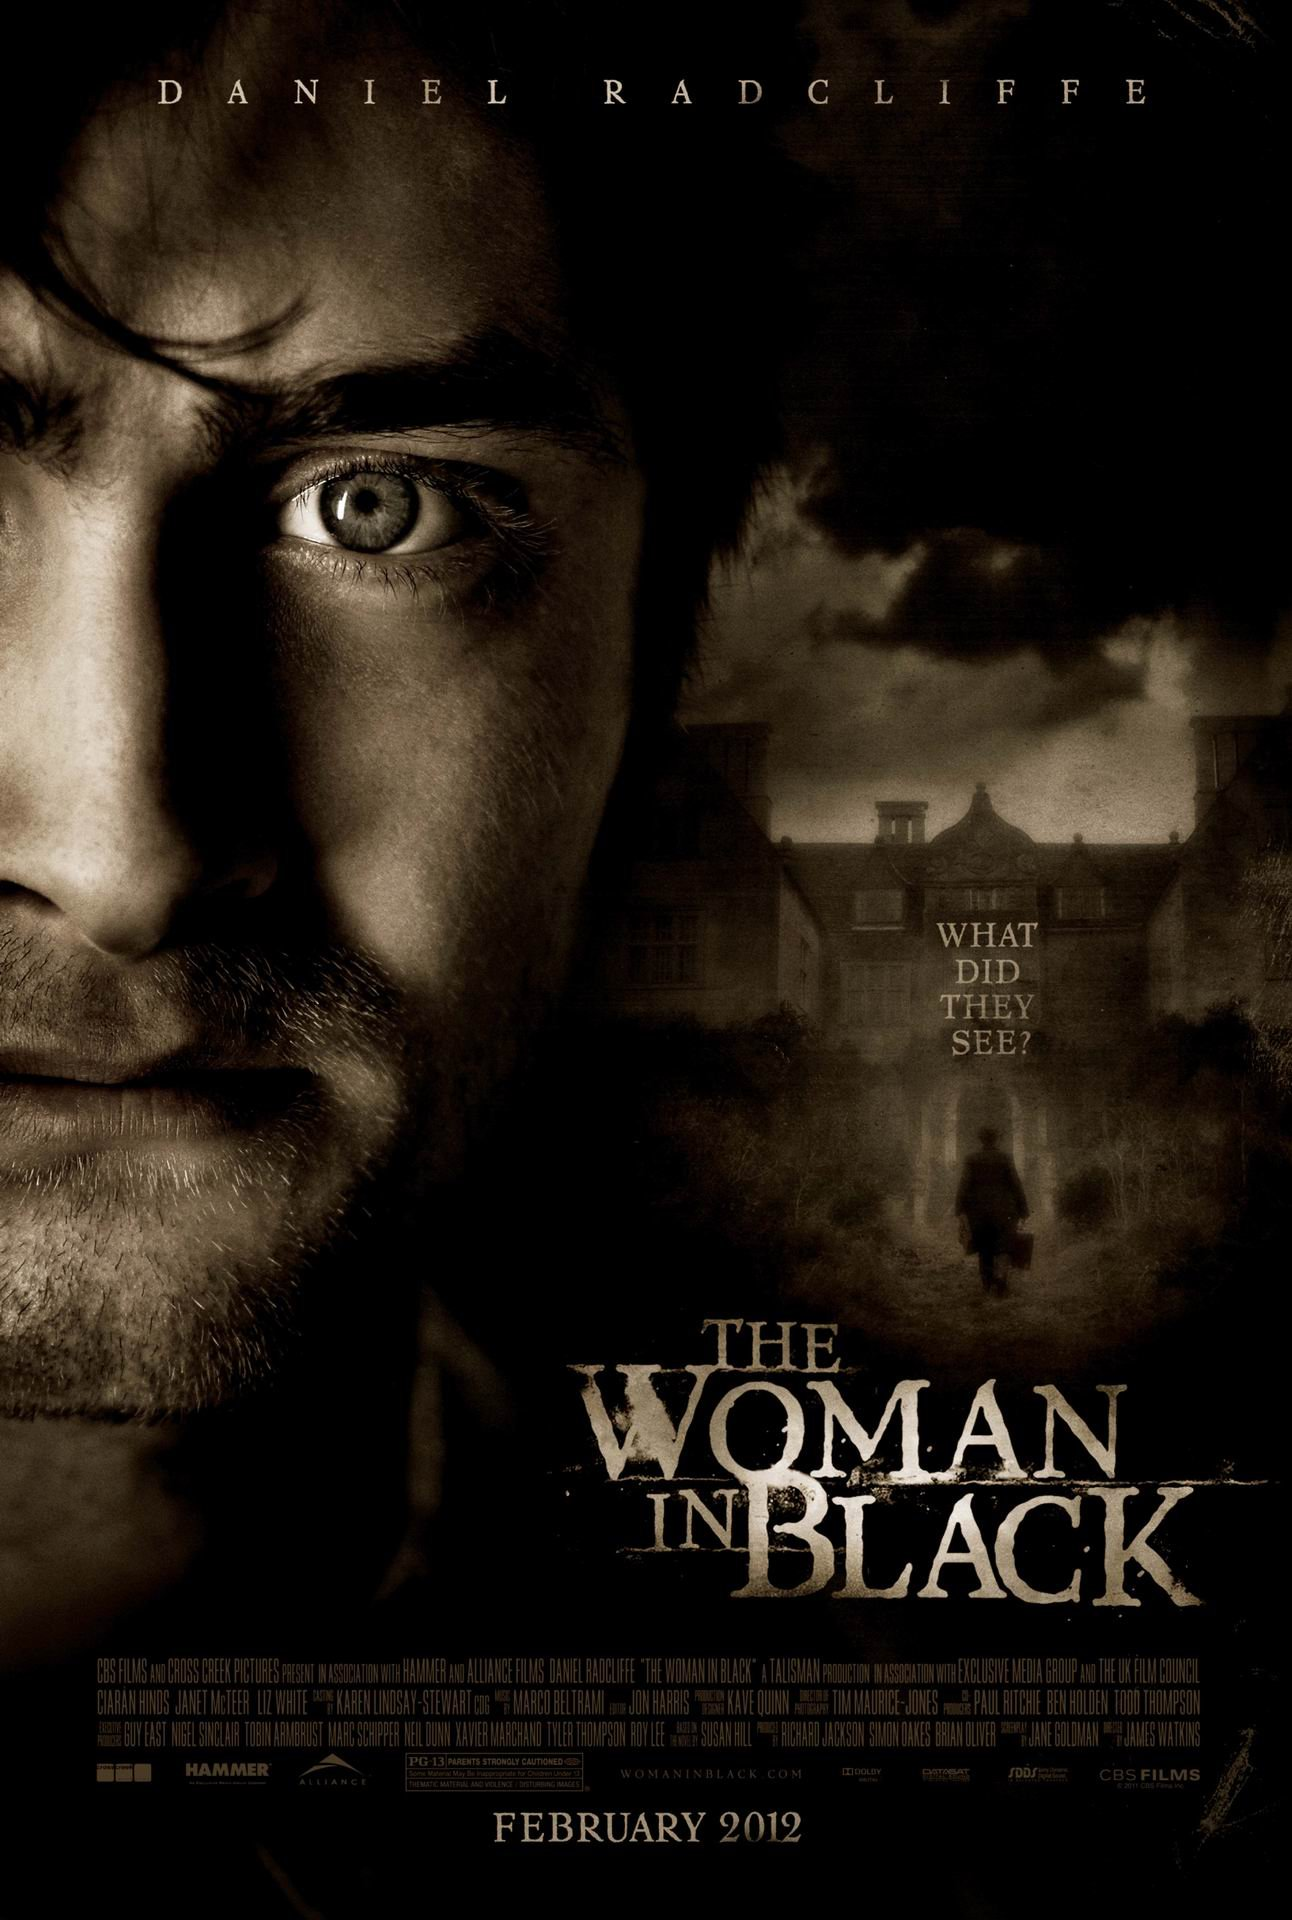 Woman in Black, The (2012) poster - FreeMoviePosters.net